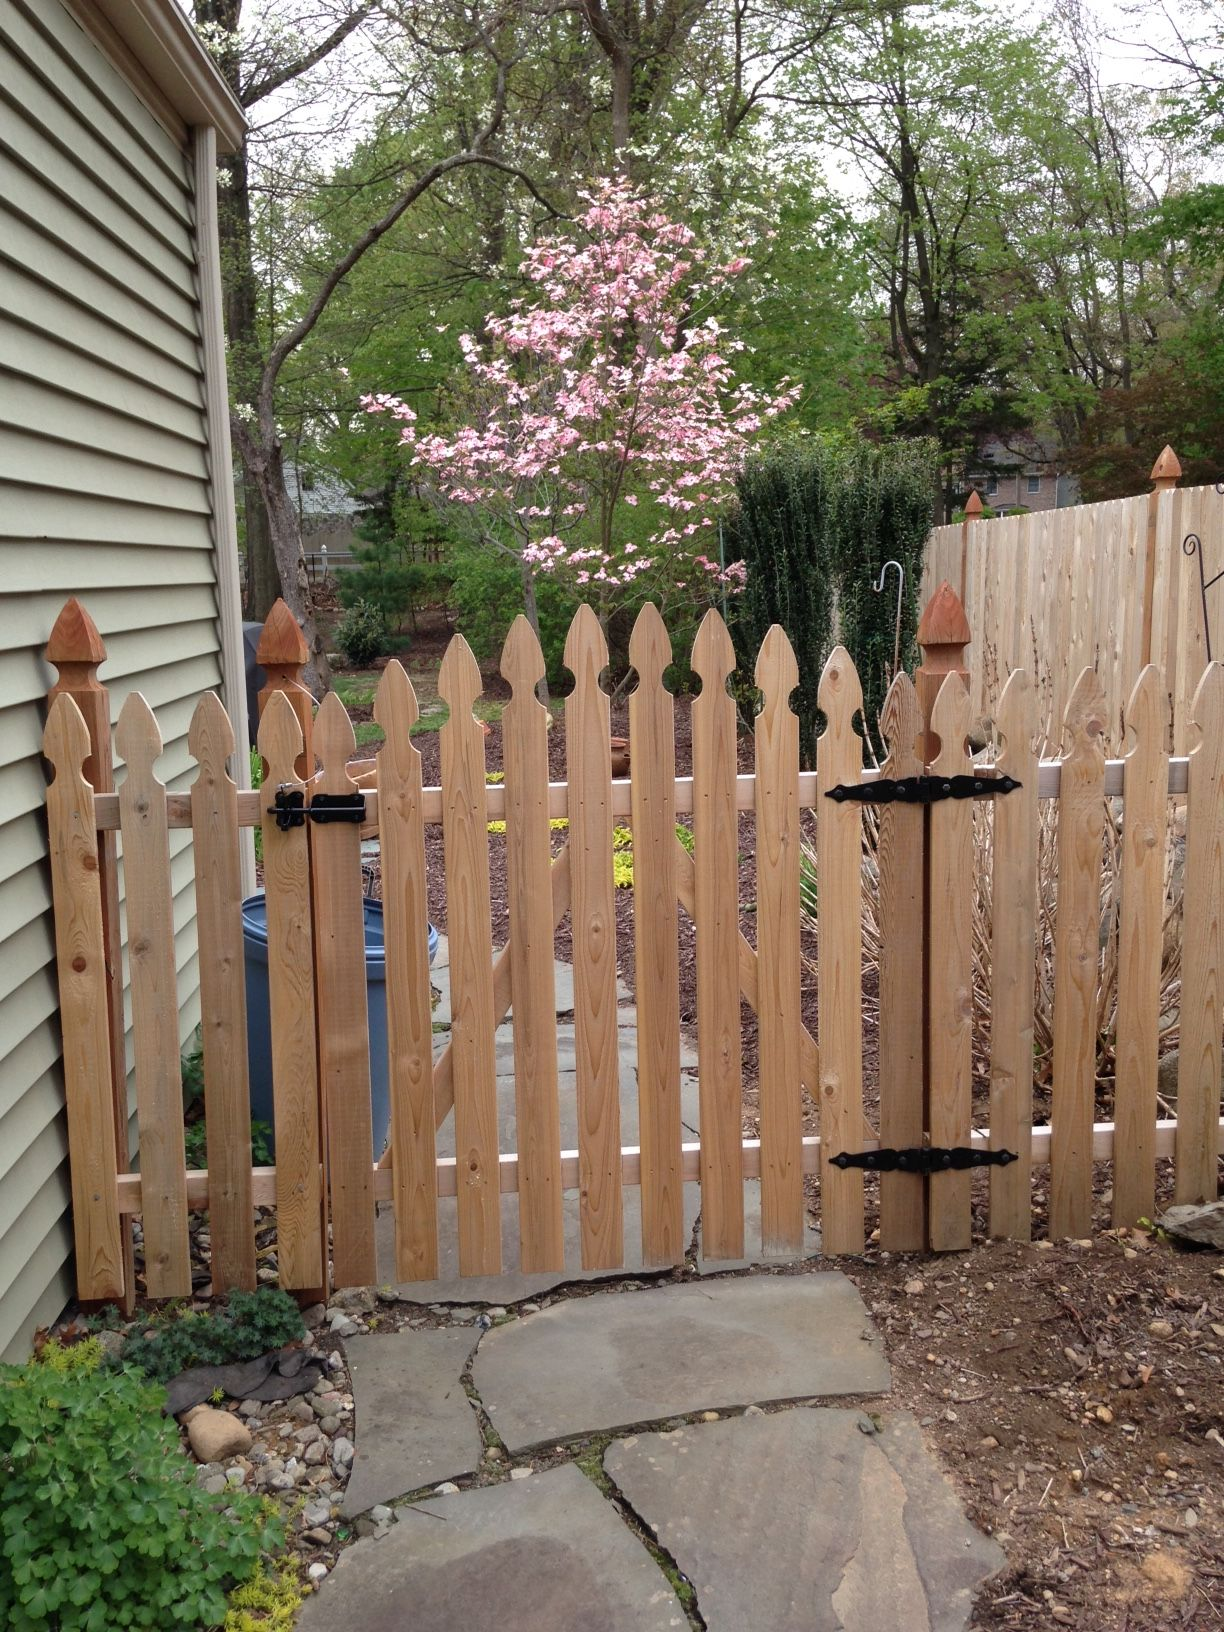 French Gothic Crowned Wood Gate Installed By Bergen Fence Wood Gate Side Garden Gothic Crown